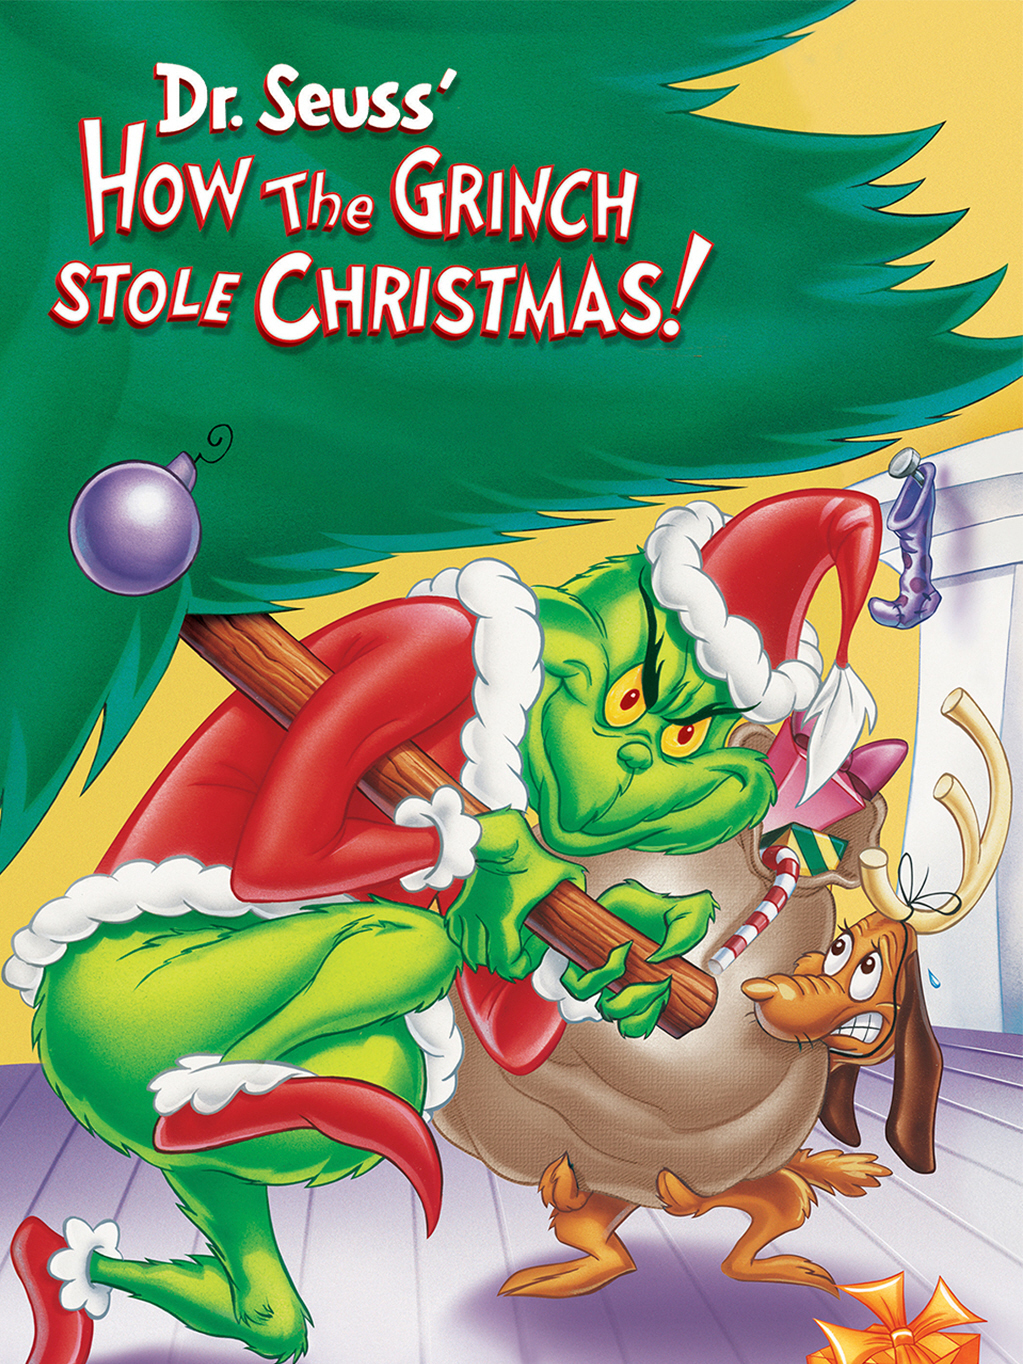 How The Grinch Stole Christmas 1966 Characters.Mr Movie How The Grinch Stole Christmas 1966 Tv Special